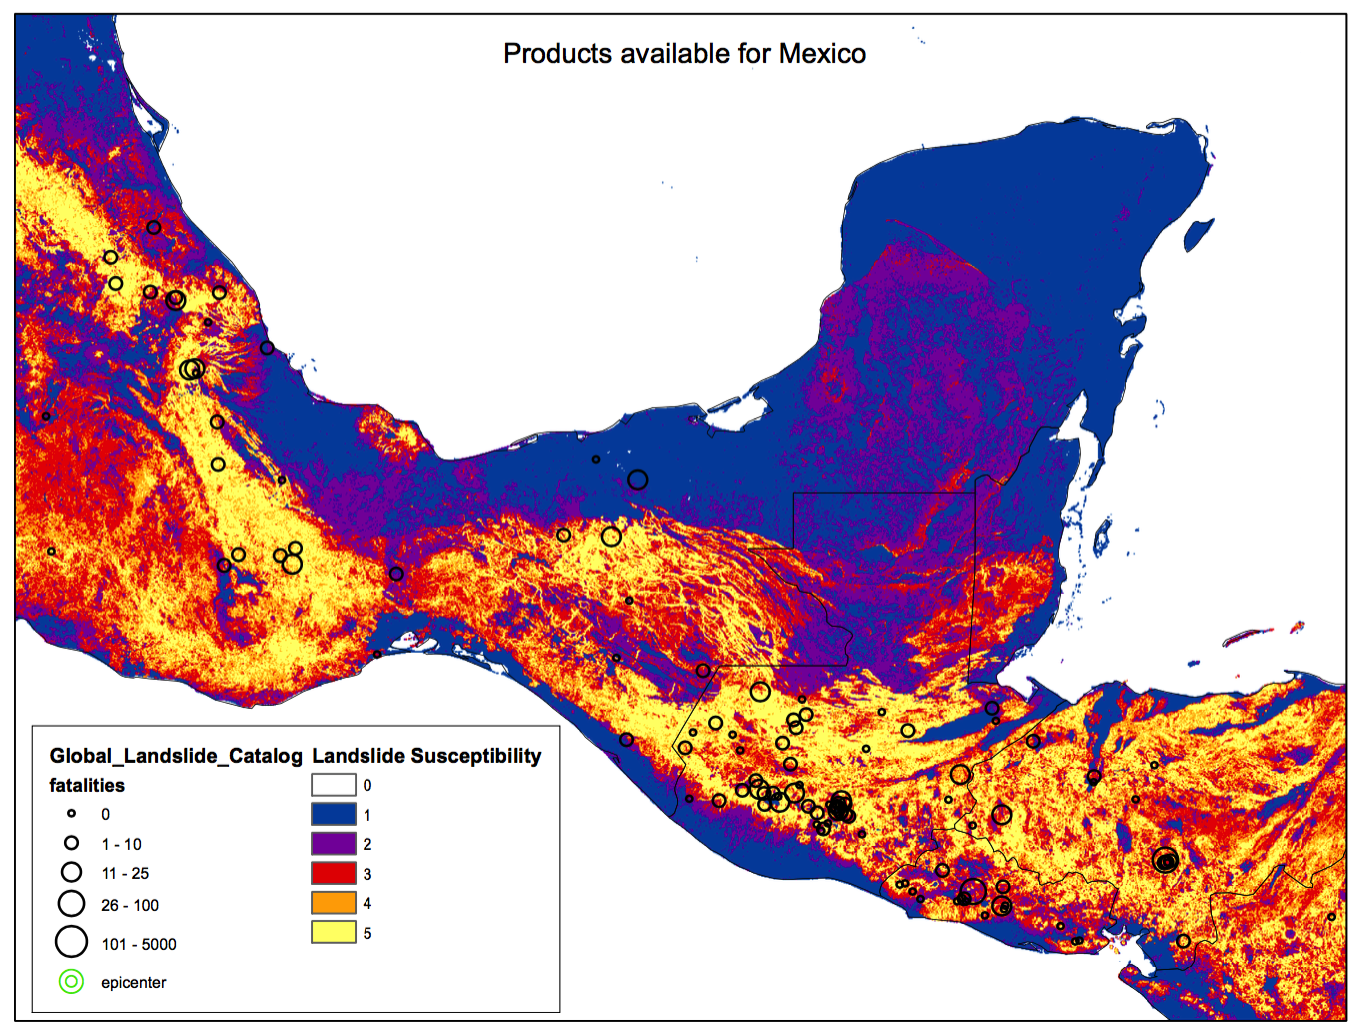 Landslide Maps for the 2017 Mexico Earthquake | NASA Earth ... on global sea level map, global debt management, global social media, global fault map, global airport map, global famine map, global water distribution, global furniture store, global telecommunications provider, global terrorist attacks map, global earthquakes today, most recent earthquakes map, global temperature rise, global disaster map, global topographic map, global flight map, global continental shelf map, global international business, earthquakes today map, global information systems,